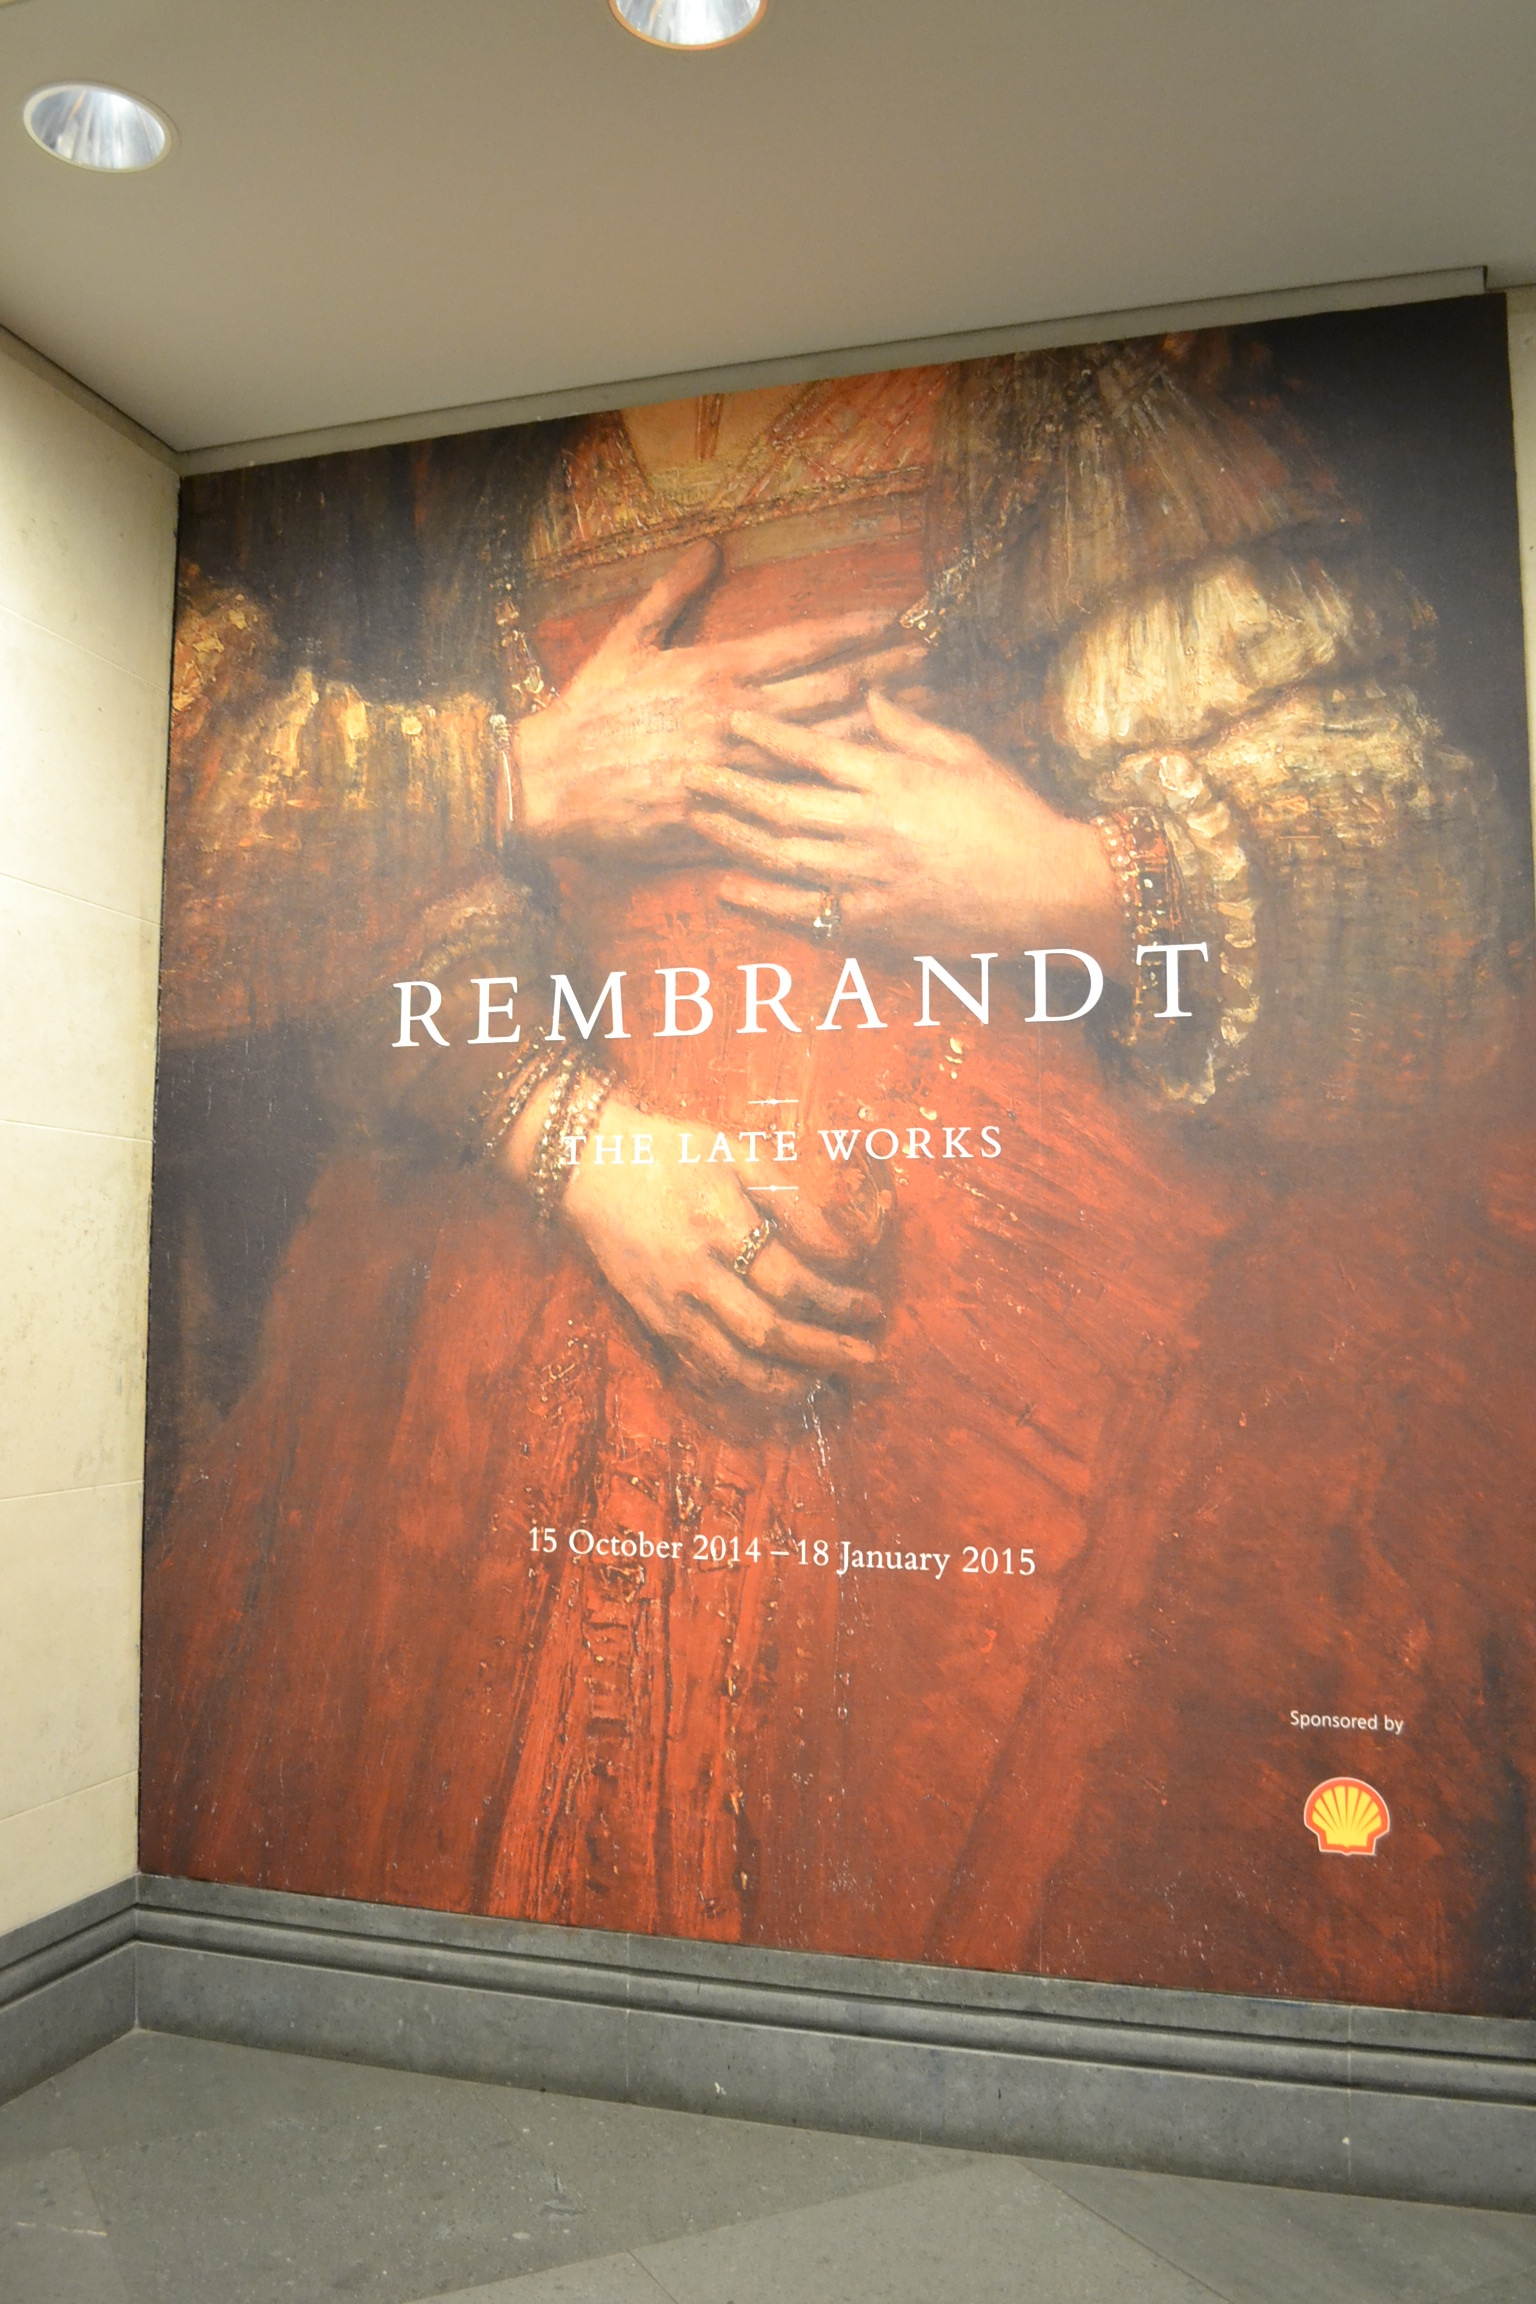 Rembrandt Exhibition Shell : Anti shell demonstration disrupts rembrandt exhibition editorial